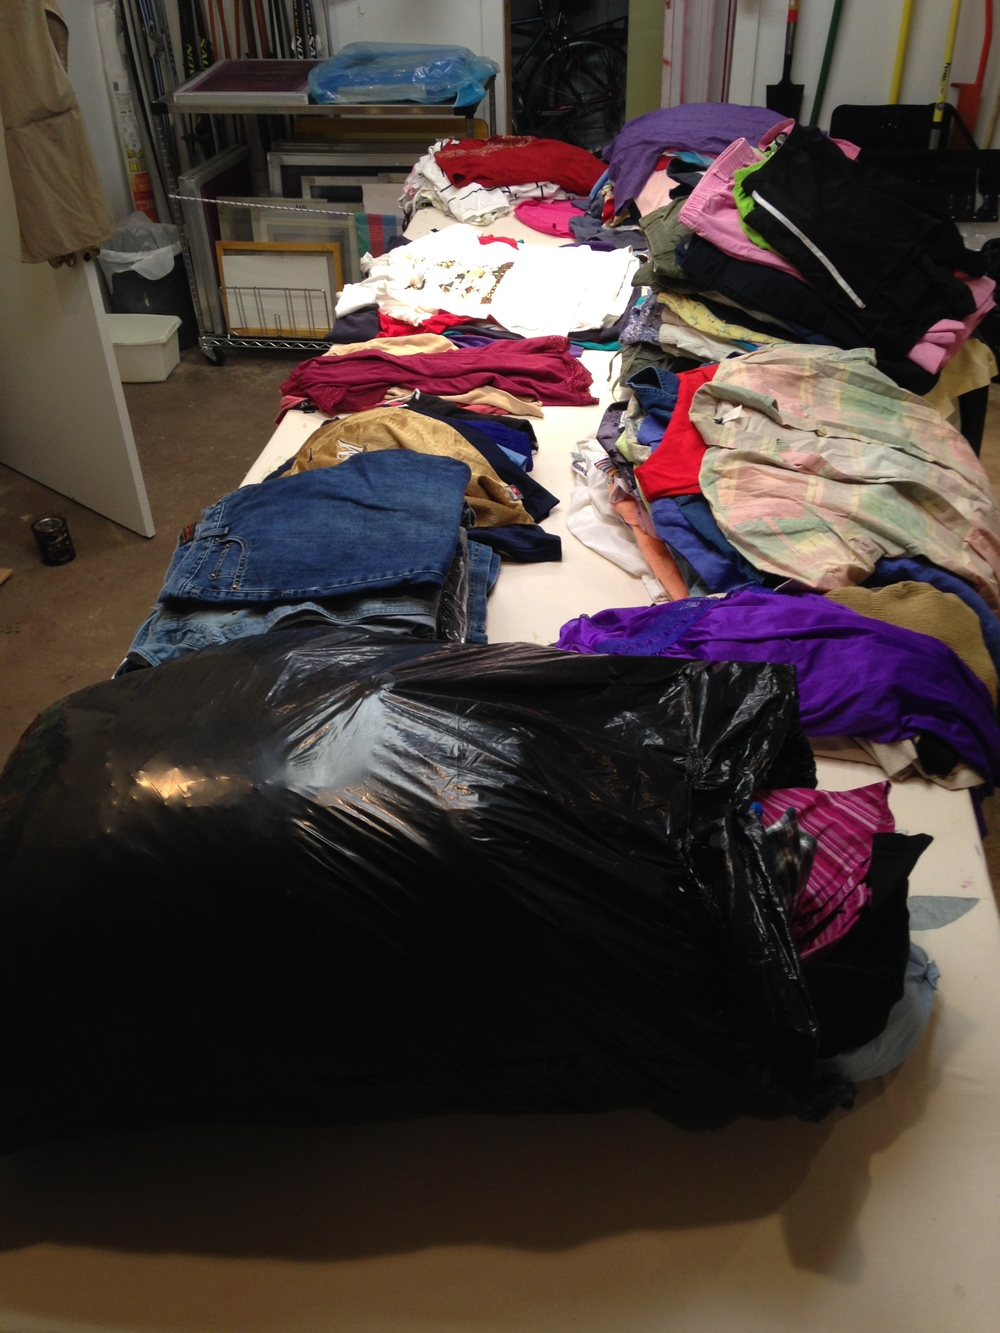 5 bags of used clothing